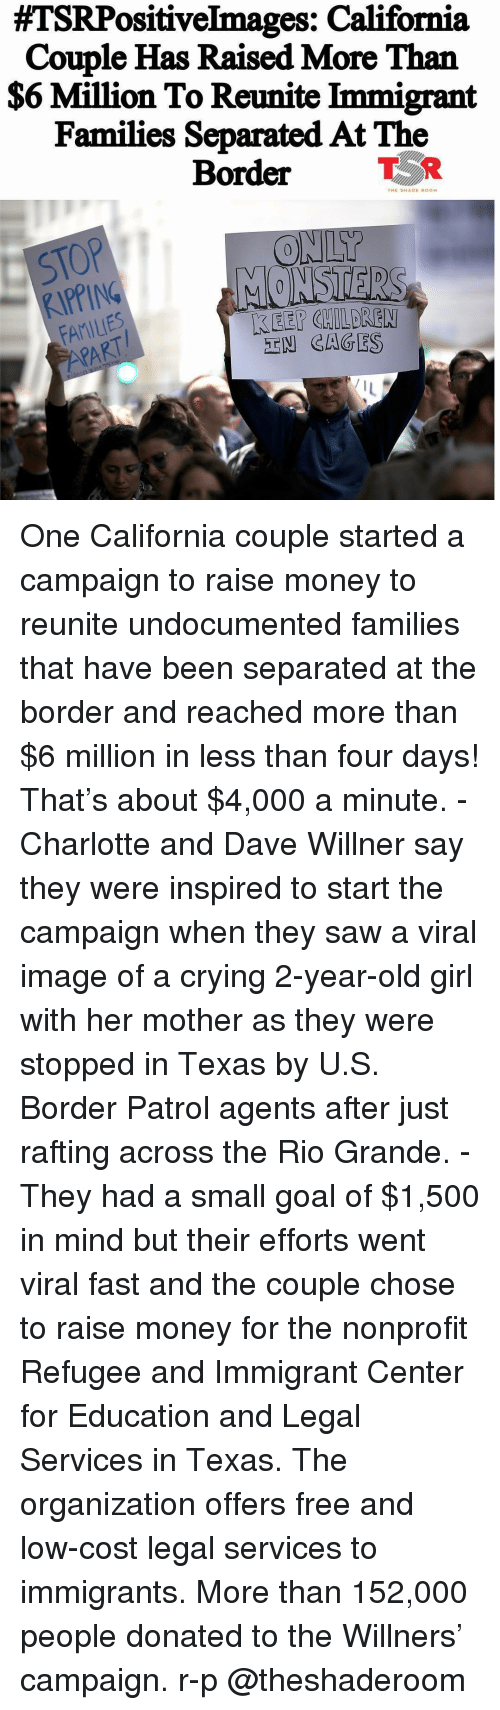 Crying, Memes, and Money:  #TSRPositiveImages: California  Couple Has Raised More Than  $6 Million To Reunite「mmigrant  Families Separated At The  Border  TER  THE SHADE ROOM  STOP  KIPPING  FAMILIES  PART  ONLY  -EM CAGES One California couple started a campaign to raise money to reunite undocumented families that have been separated at the border and reached more than $6 million in less than four days! That's about $4,000 a minute. - Charlotte and Dave Willner say they were inspired to start the campaign when they saw a viral image of a crying 2-year-old girl with her mother as they were stopped in Texas by U.S. Border Patrol agents after just rafting across the Rio Grande. - They had a small goal of $1,500 in mind but their efforts went viral fast and the couple chose to raise money for the nonprofit Refugee and Immigrant Center for Education and Legal Services in Texas. The organization offers free and low-cost legal services to immigrants. More than 152,000 people donated to the Willners' campaign. r-p @theshaderoom